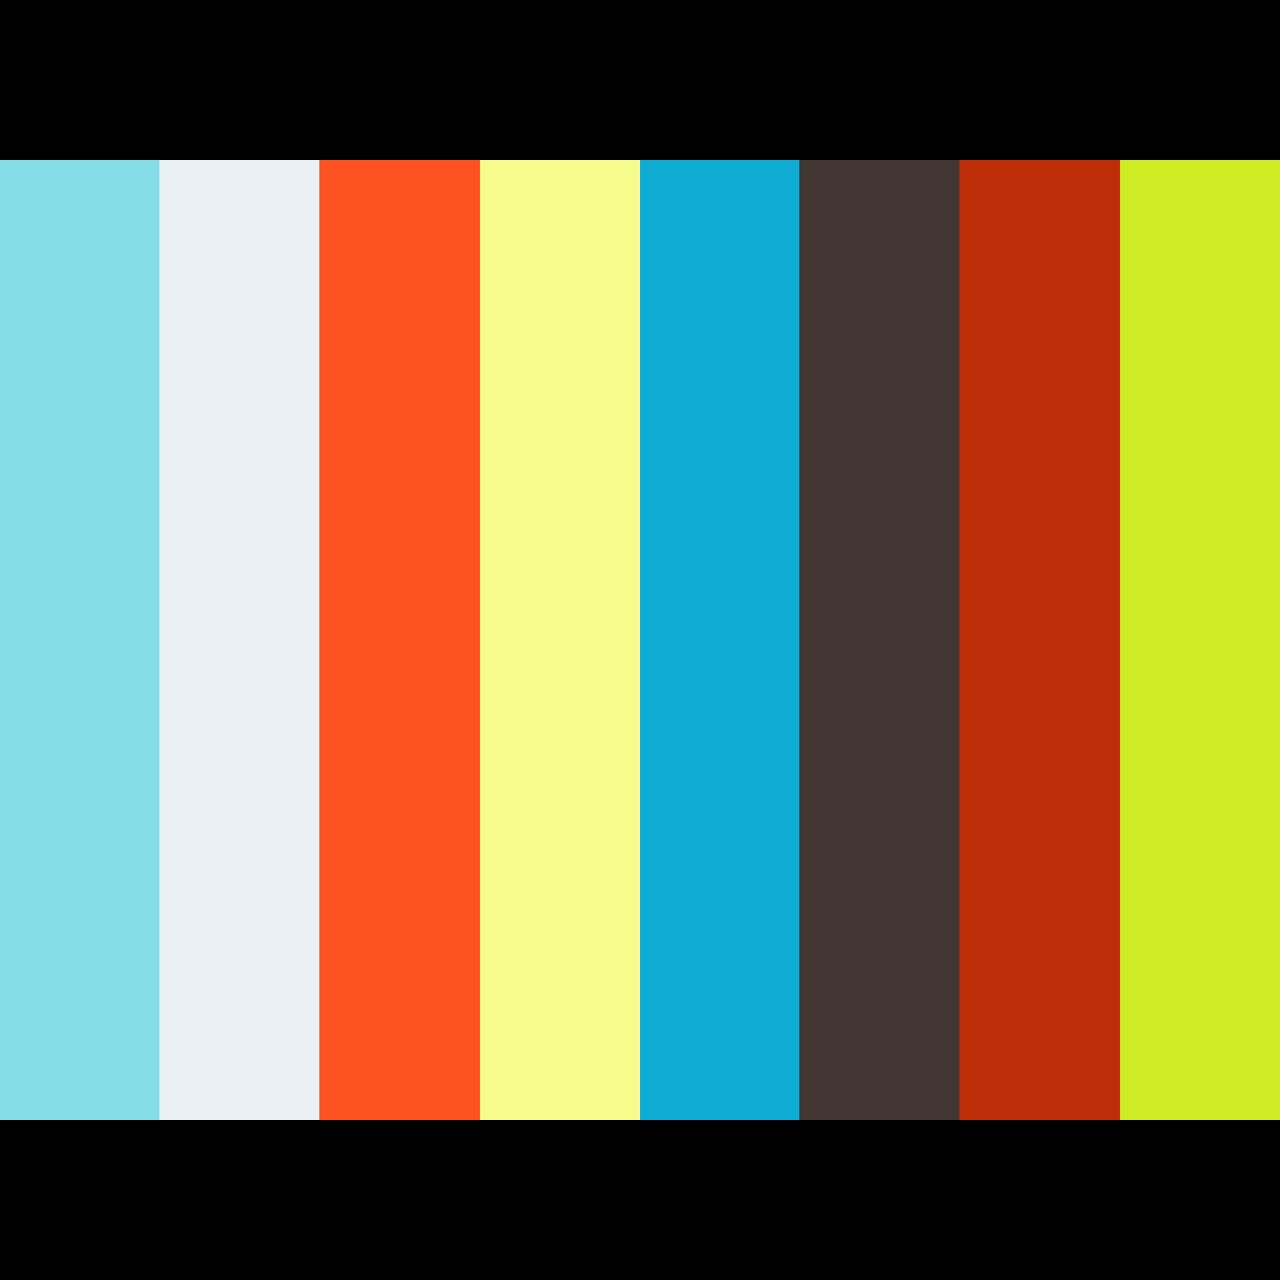 Poster. All in one trading app